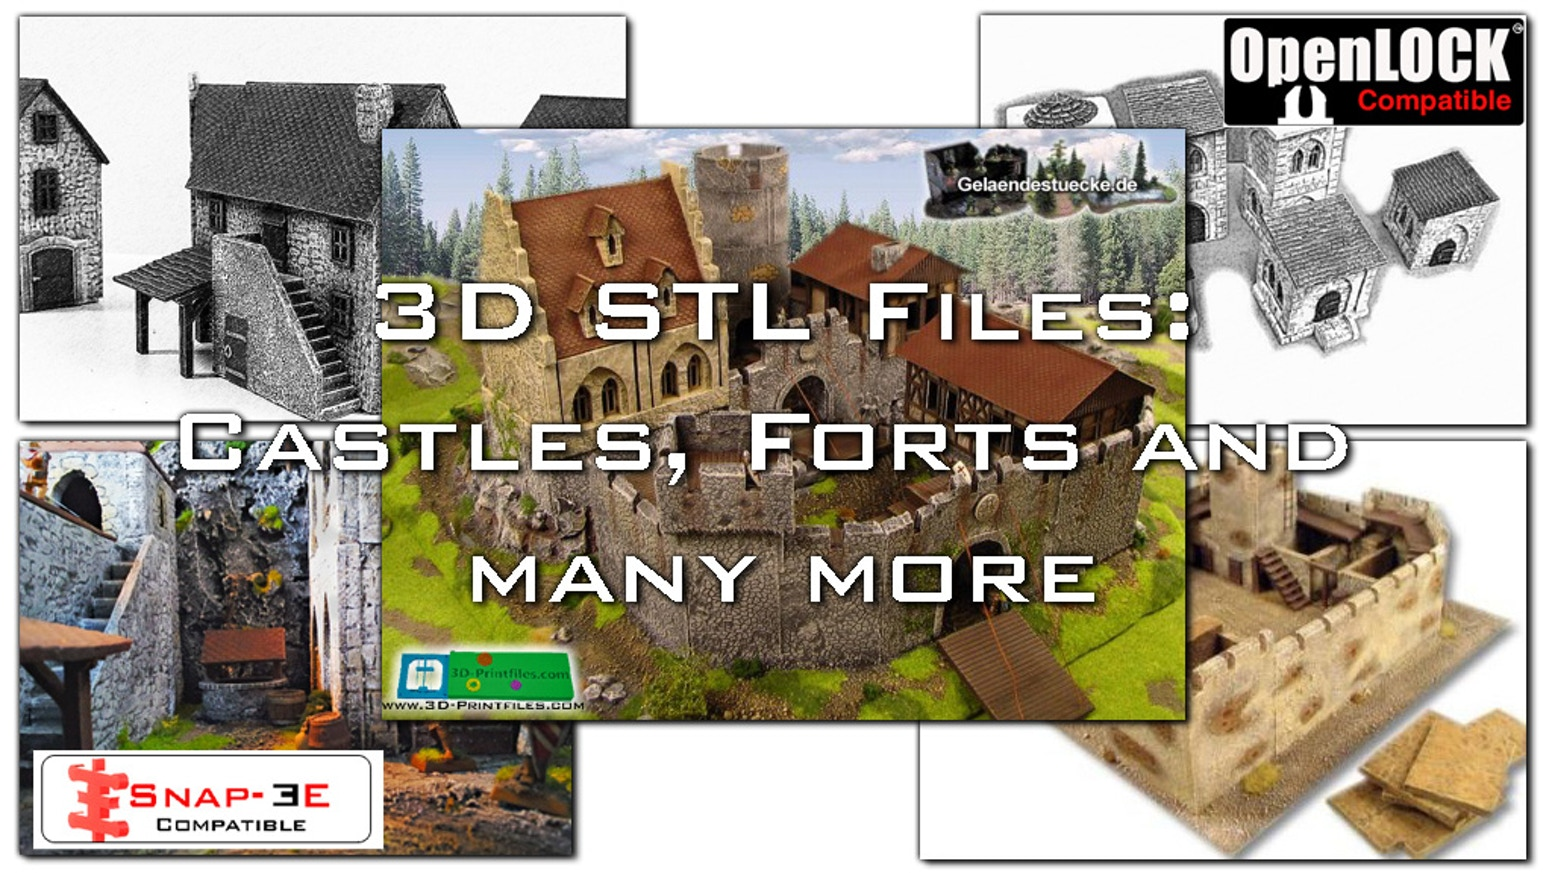 Build your own fort, castle, fortress, village and many more with your own 3D Home Printer. OpenLOCK & Snap-EE Compatible.